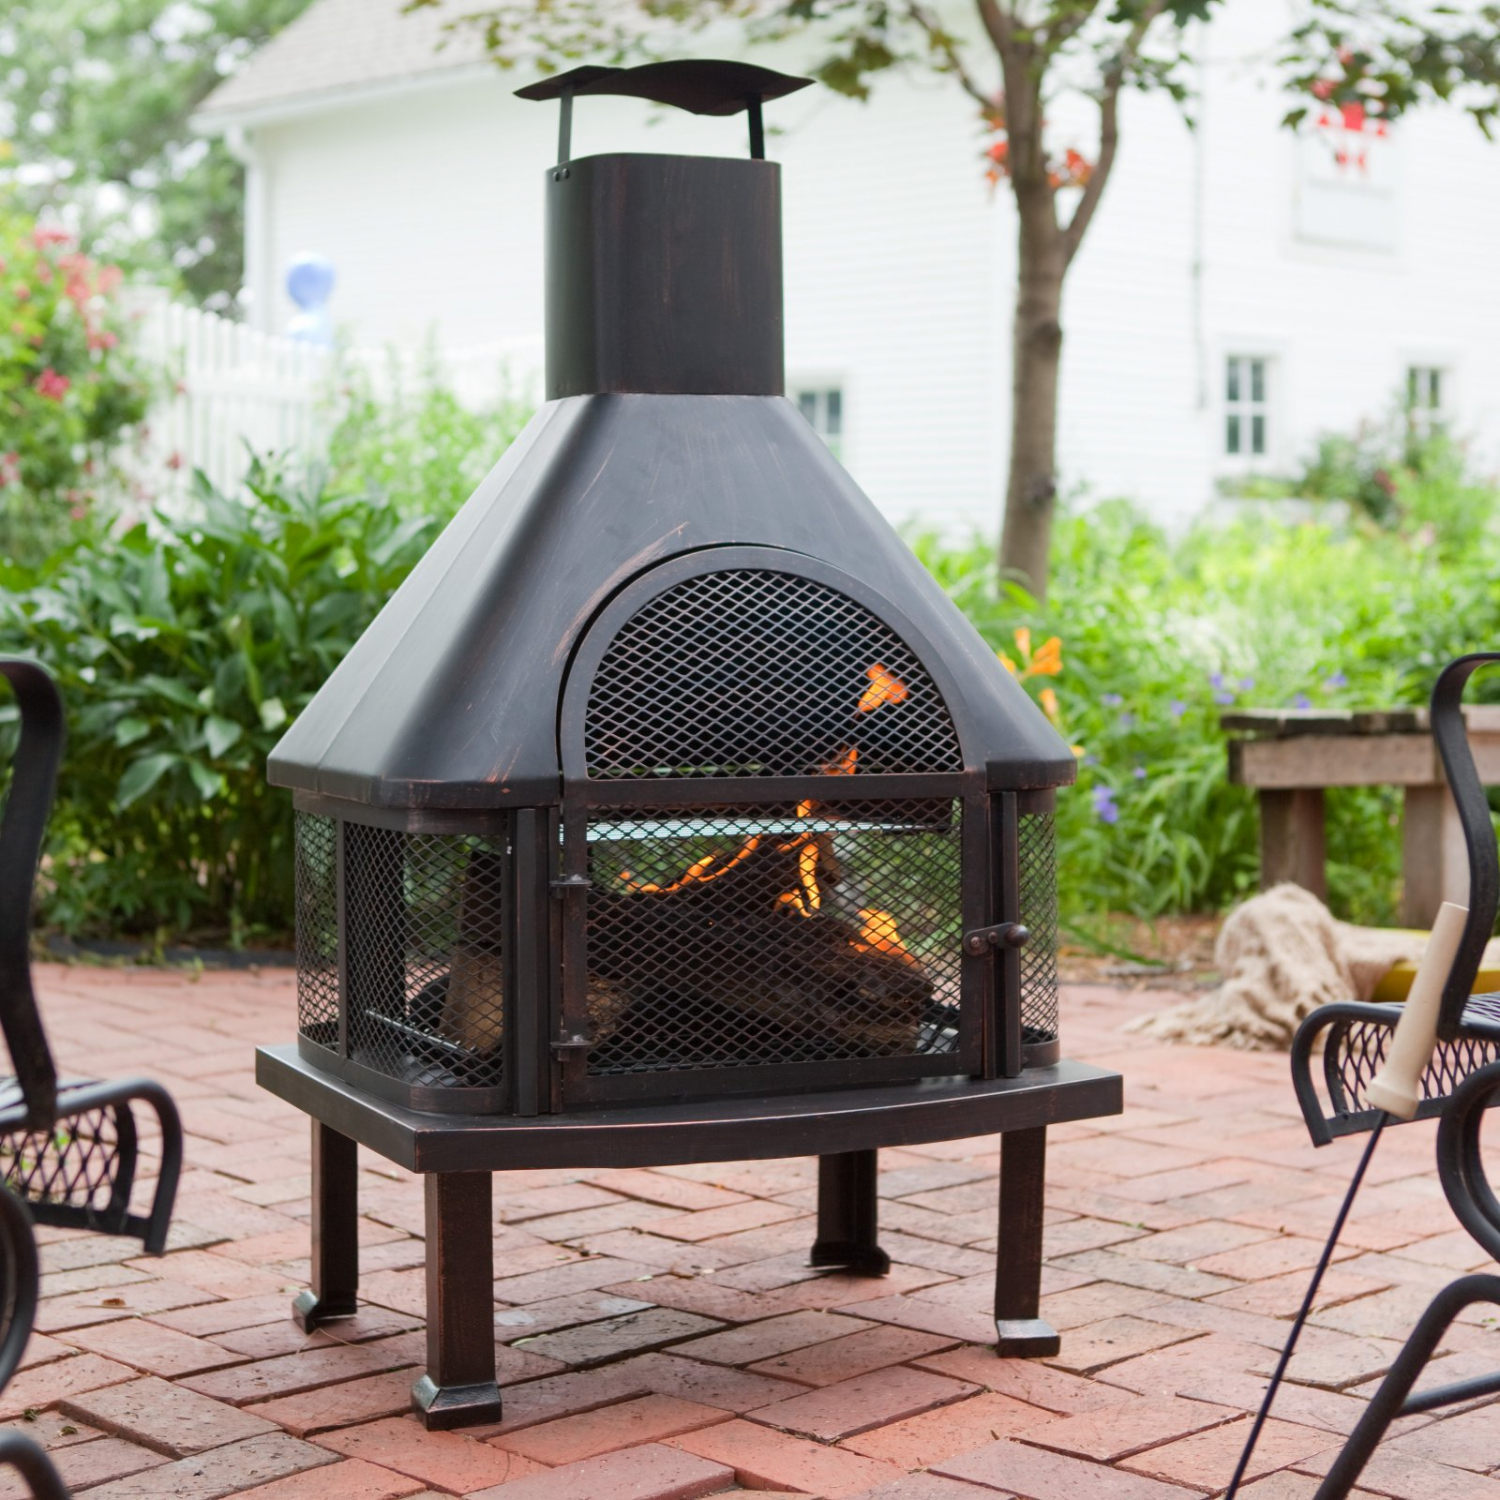 Prime Details About Outdoor Fireplace Fire Pit Wood Burning Chiminea Cover Rack Cooking Grate Yard Home Interior And Landscaping Ologienasavecom